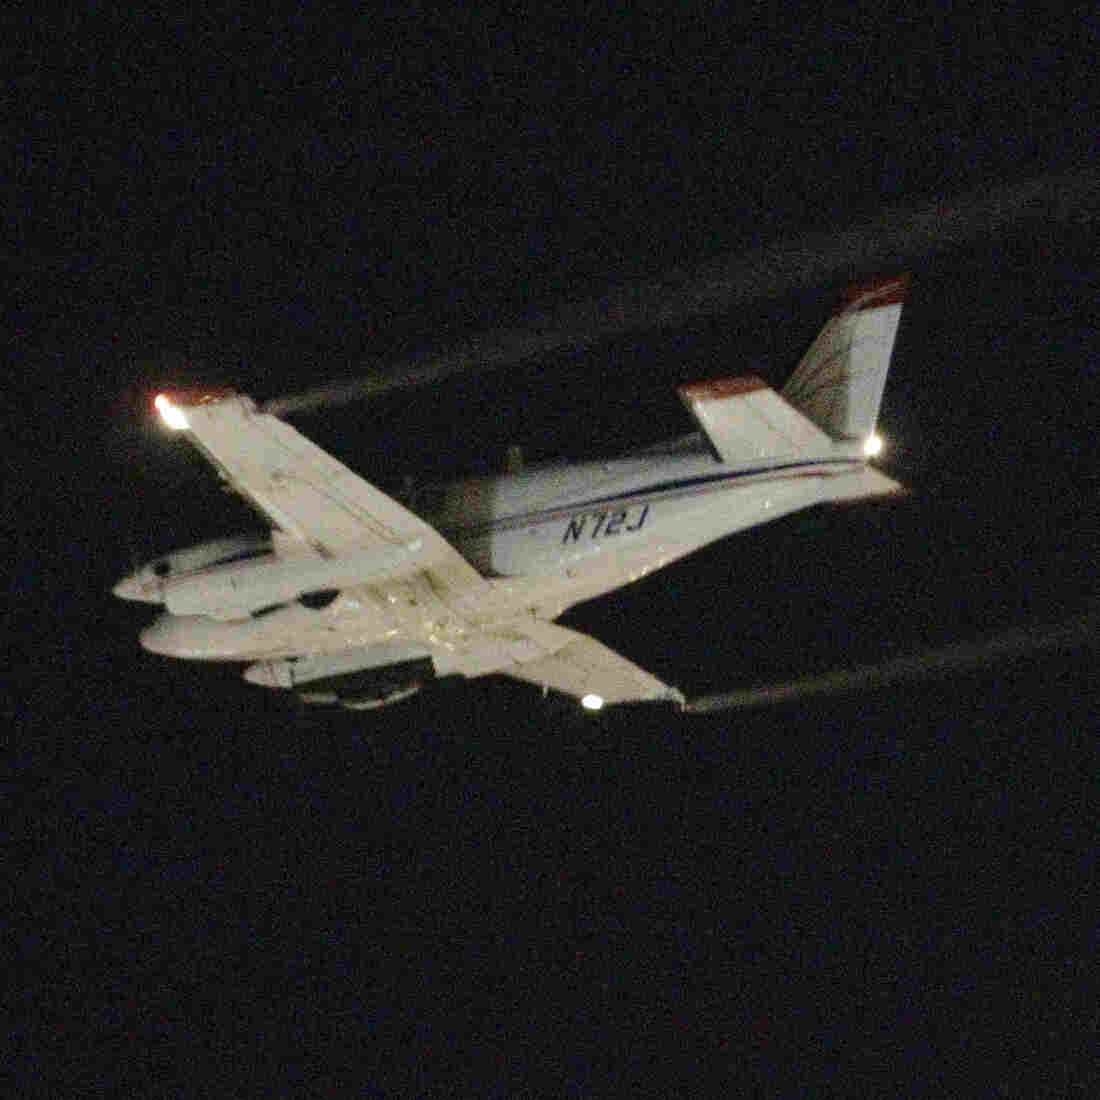 A Beechcraft airplane sprays insecticide over Dallas early Monday morning to curb the spread of West Nile virus.